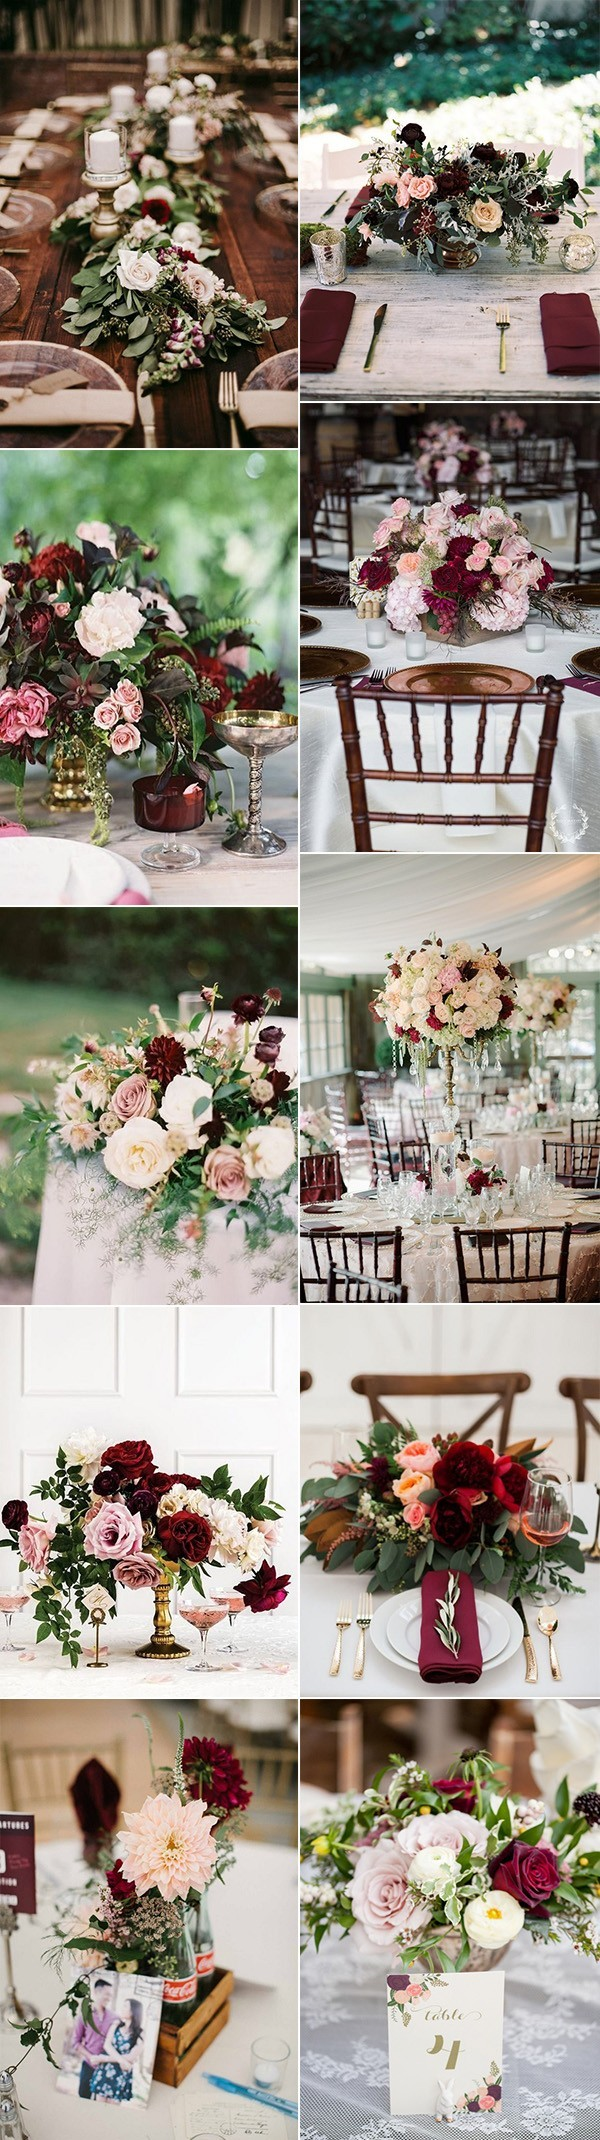 trending burgundy and blush wedding centerpieces